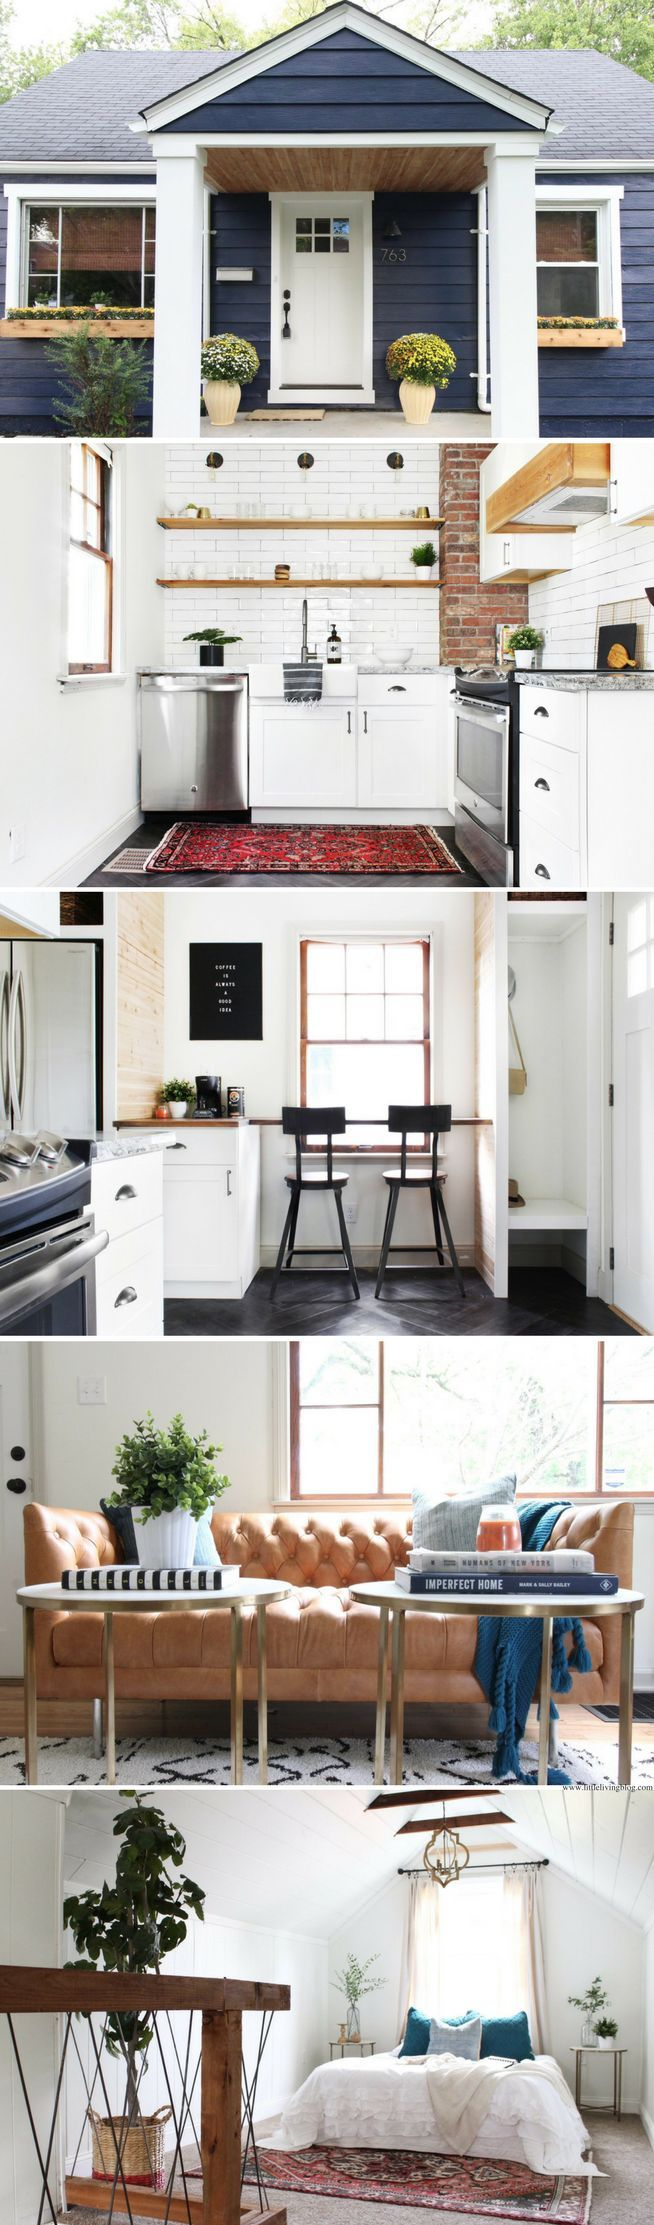 The 25+ best 1000 sq ft house ideas on Pinterest | 1000 sq ft ...